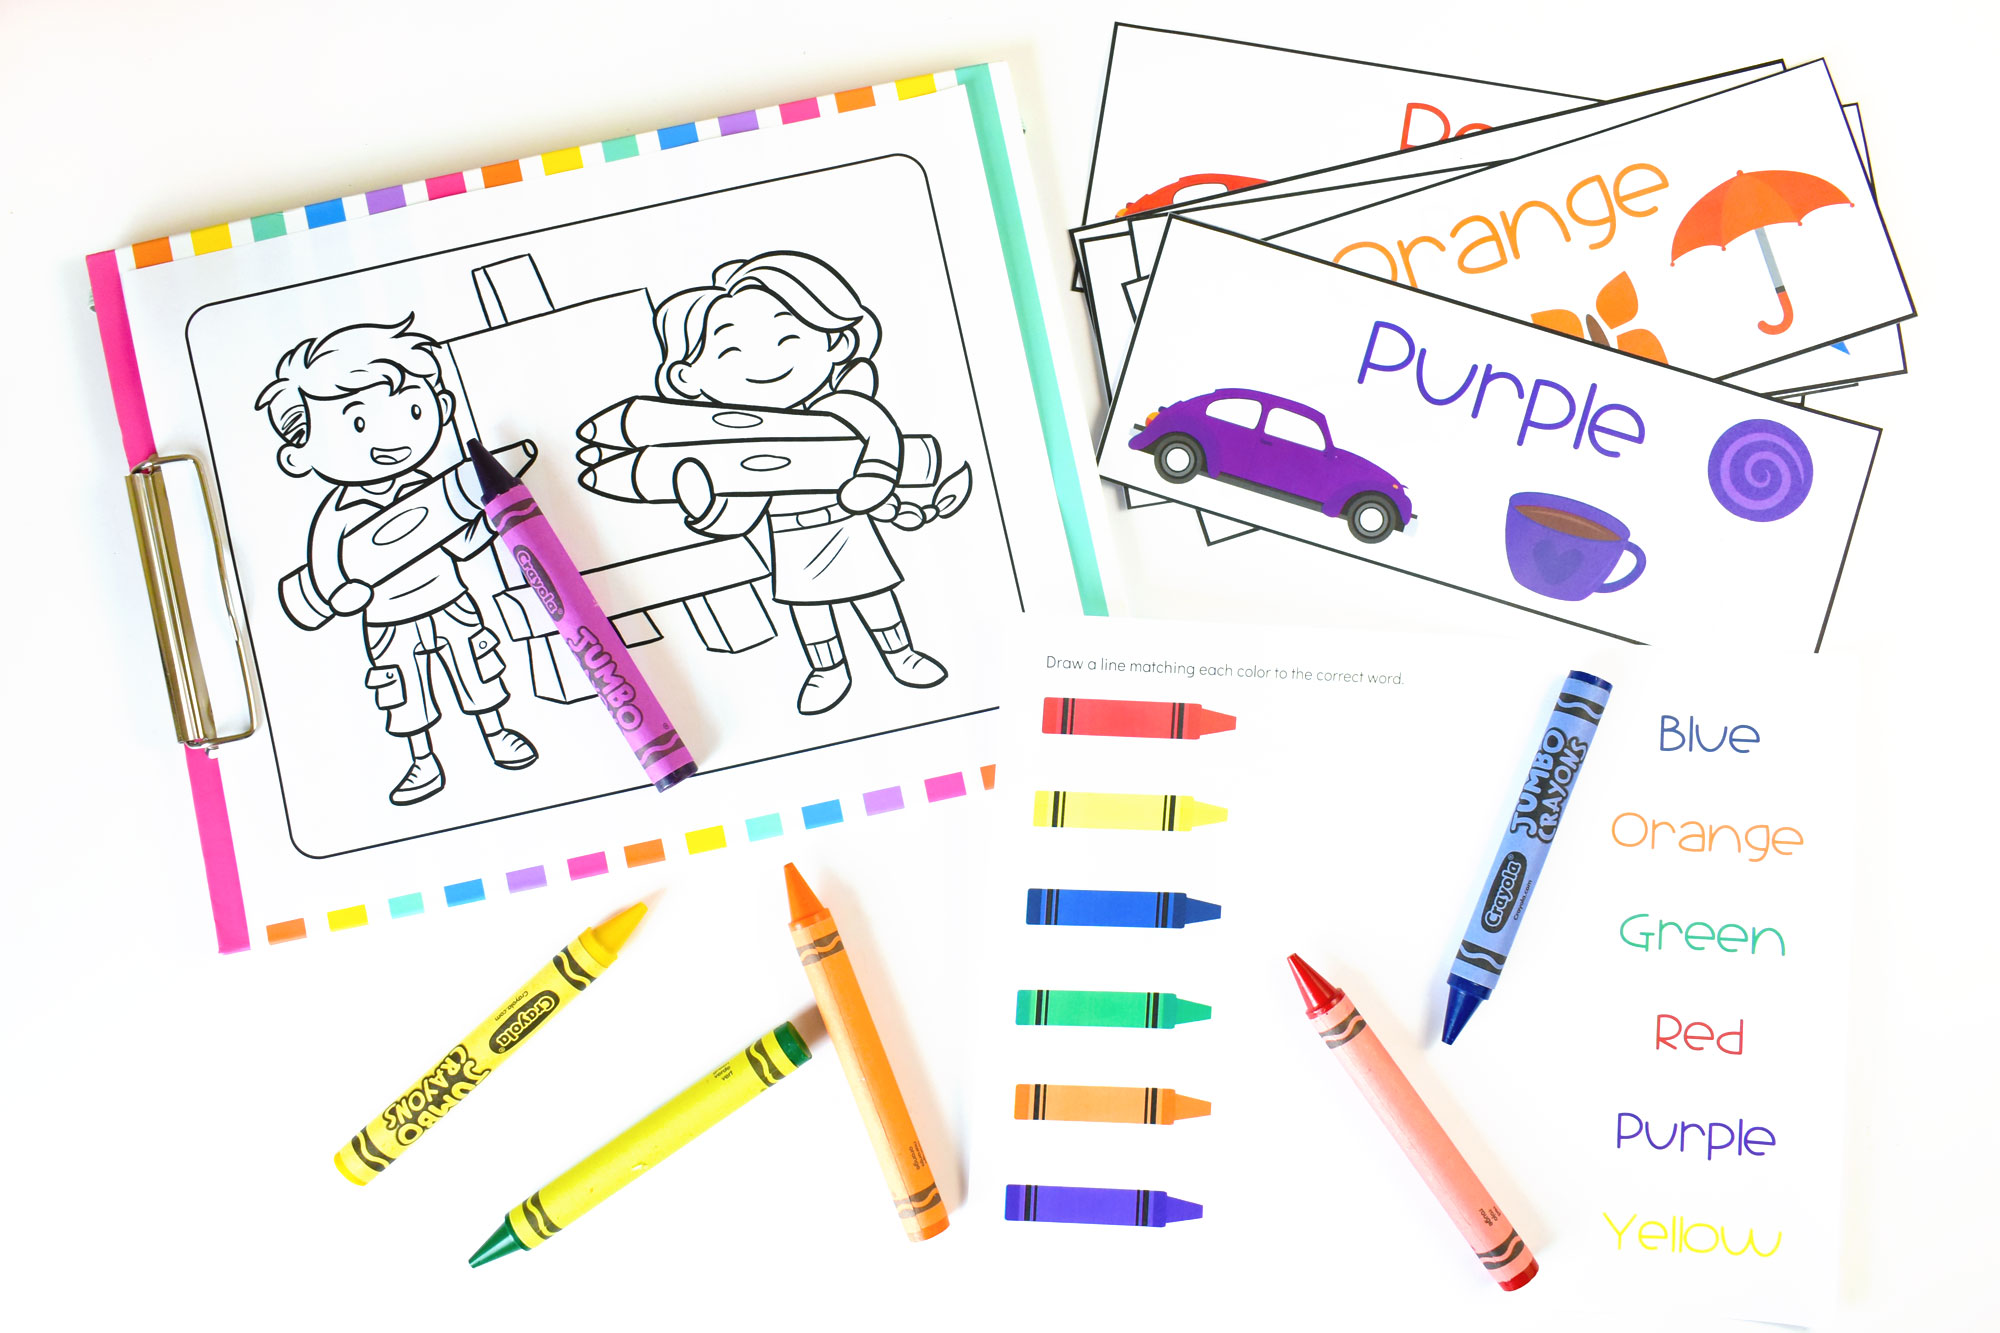 World Color Day - All About Colors for Kids Printable Pack | HolidayPrintables.net #colors #colorday #holidayprintables #weloveprintables #homeschoolprintables #printables #printableforeducation